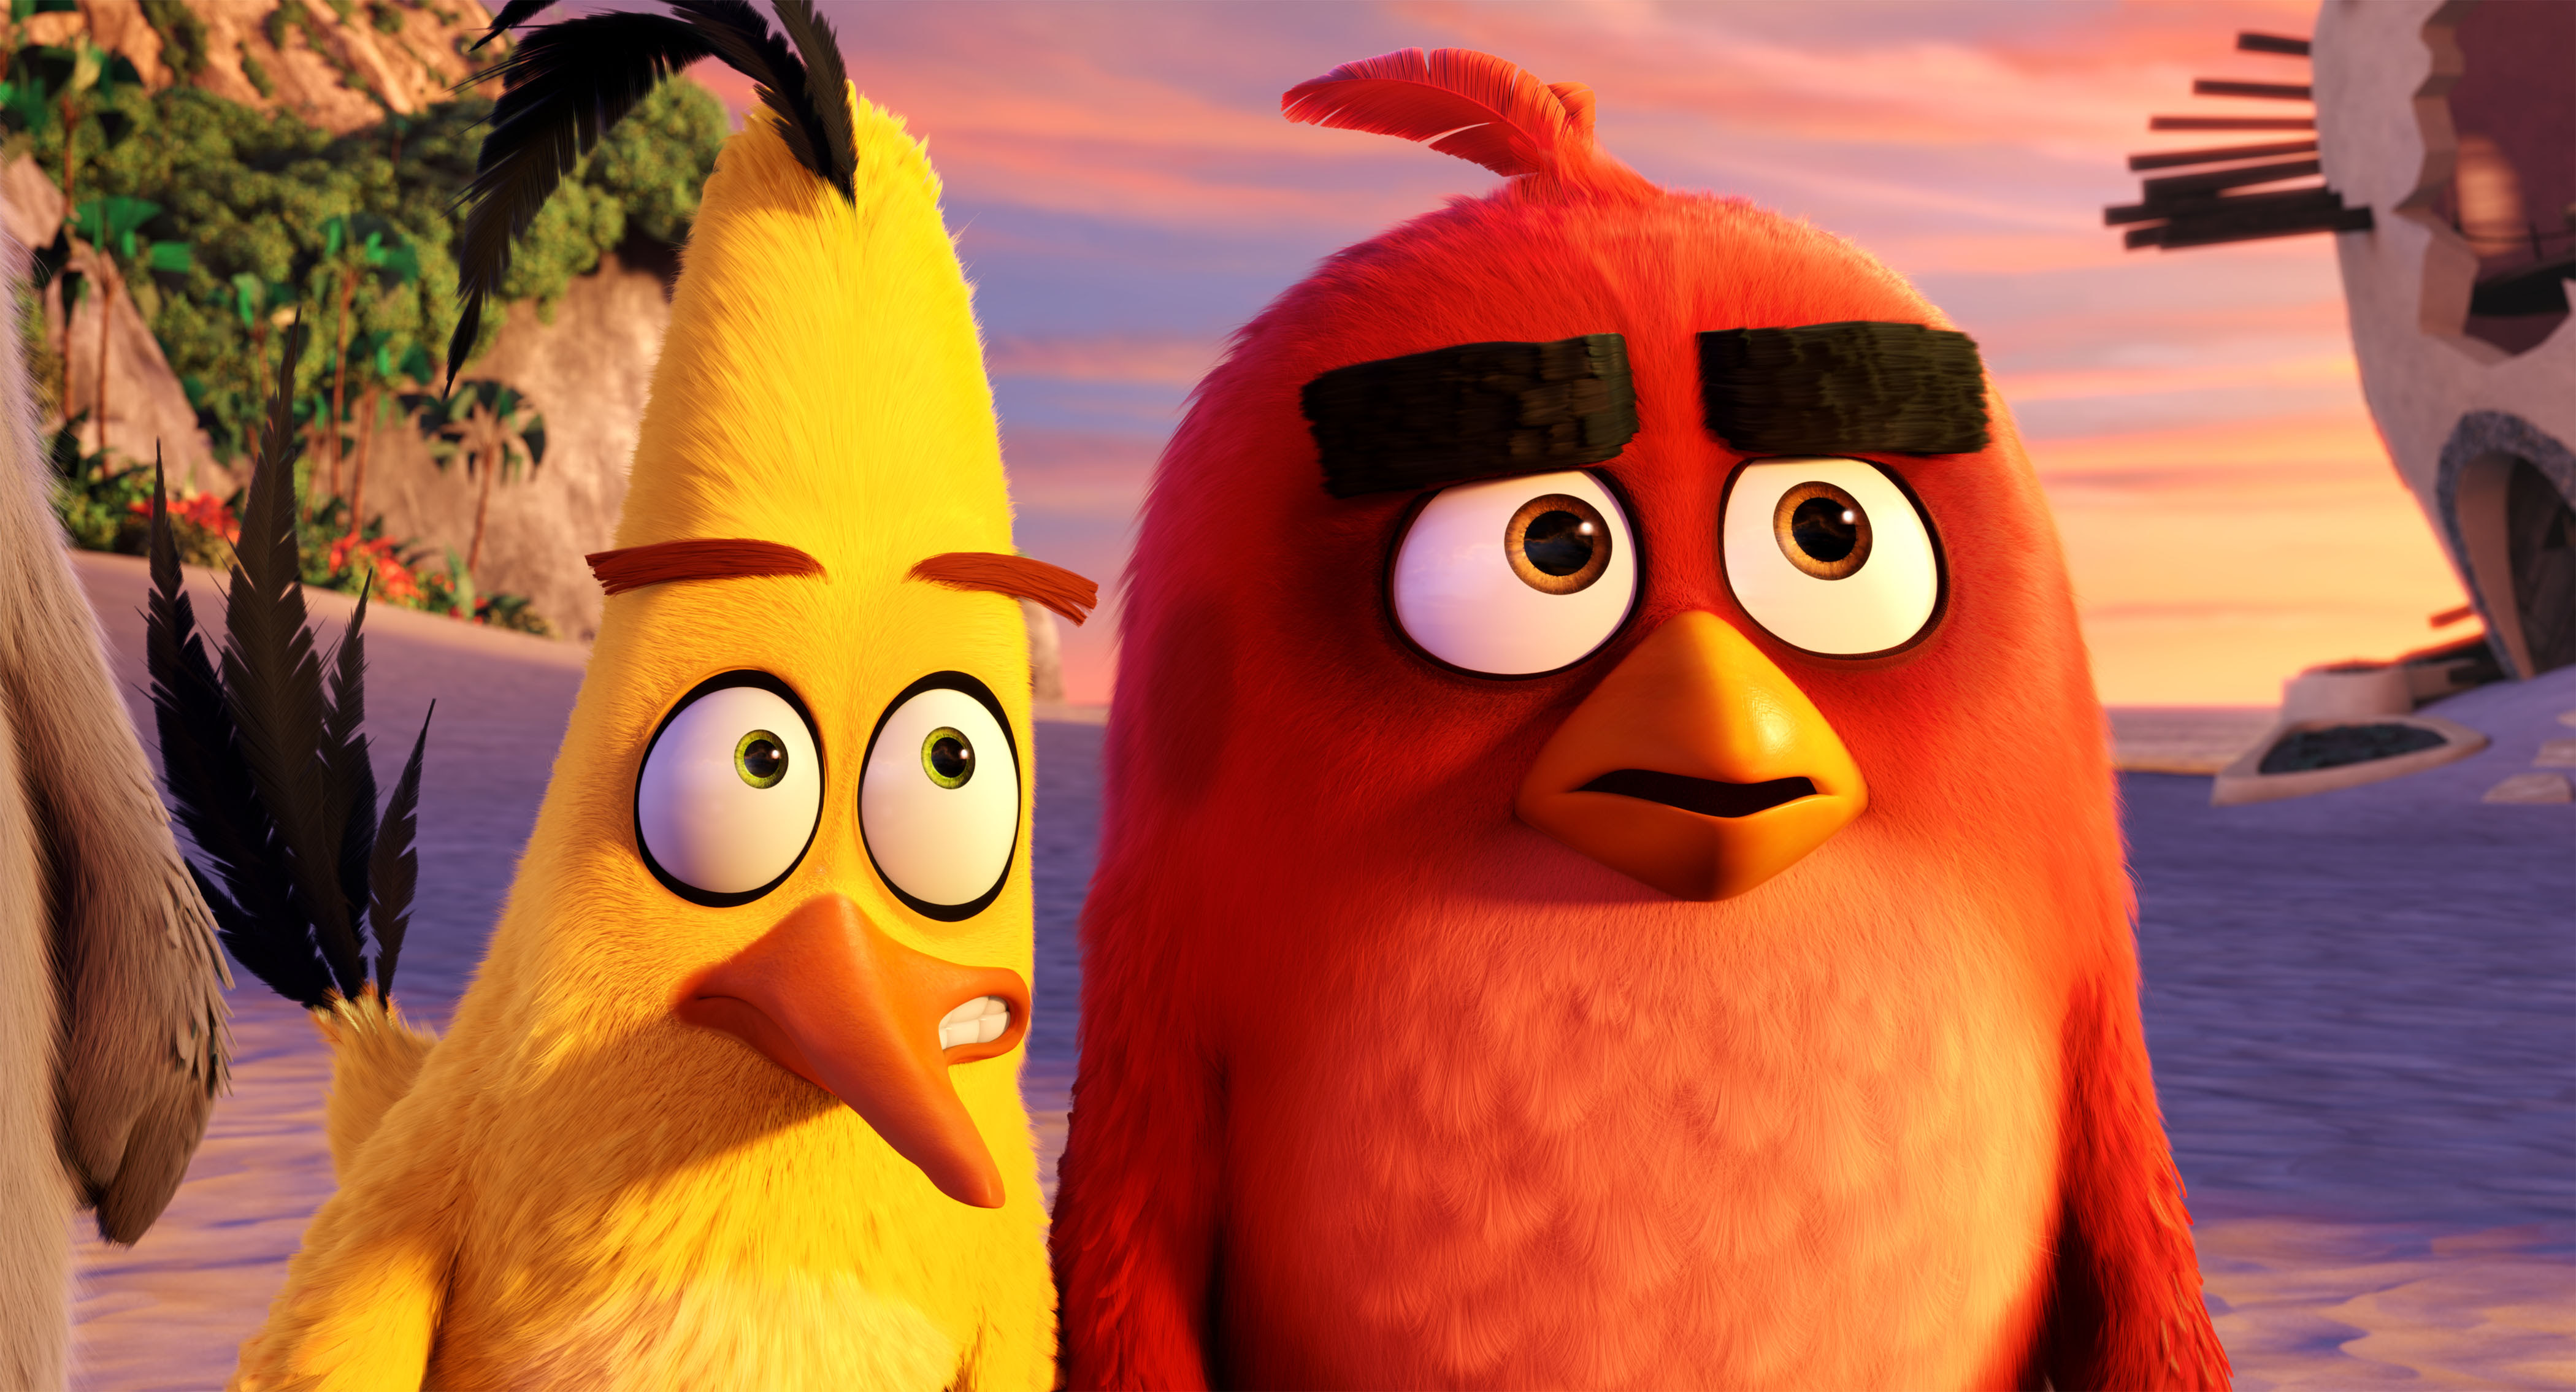 The Angry Birds Movie Looks Hilarious Angry Birds Theater